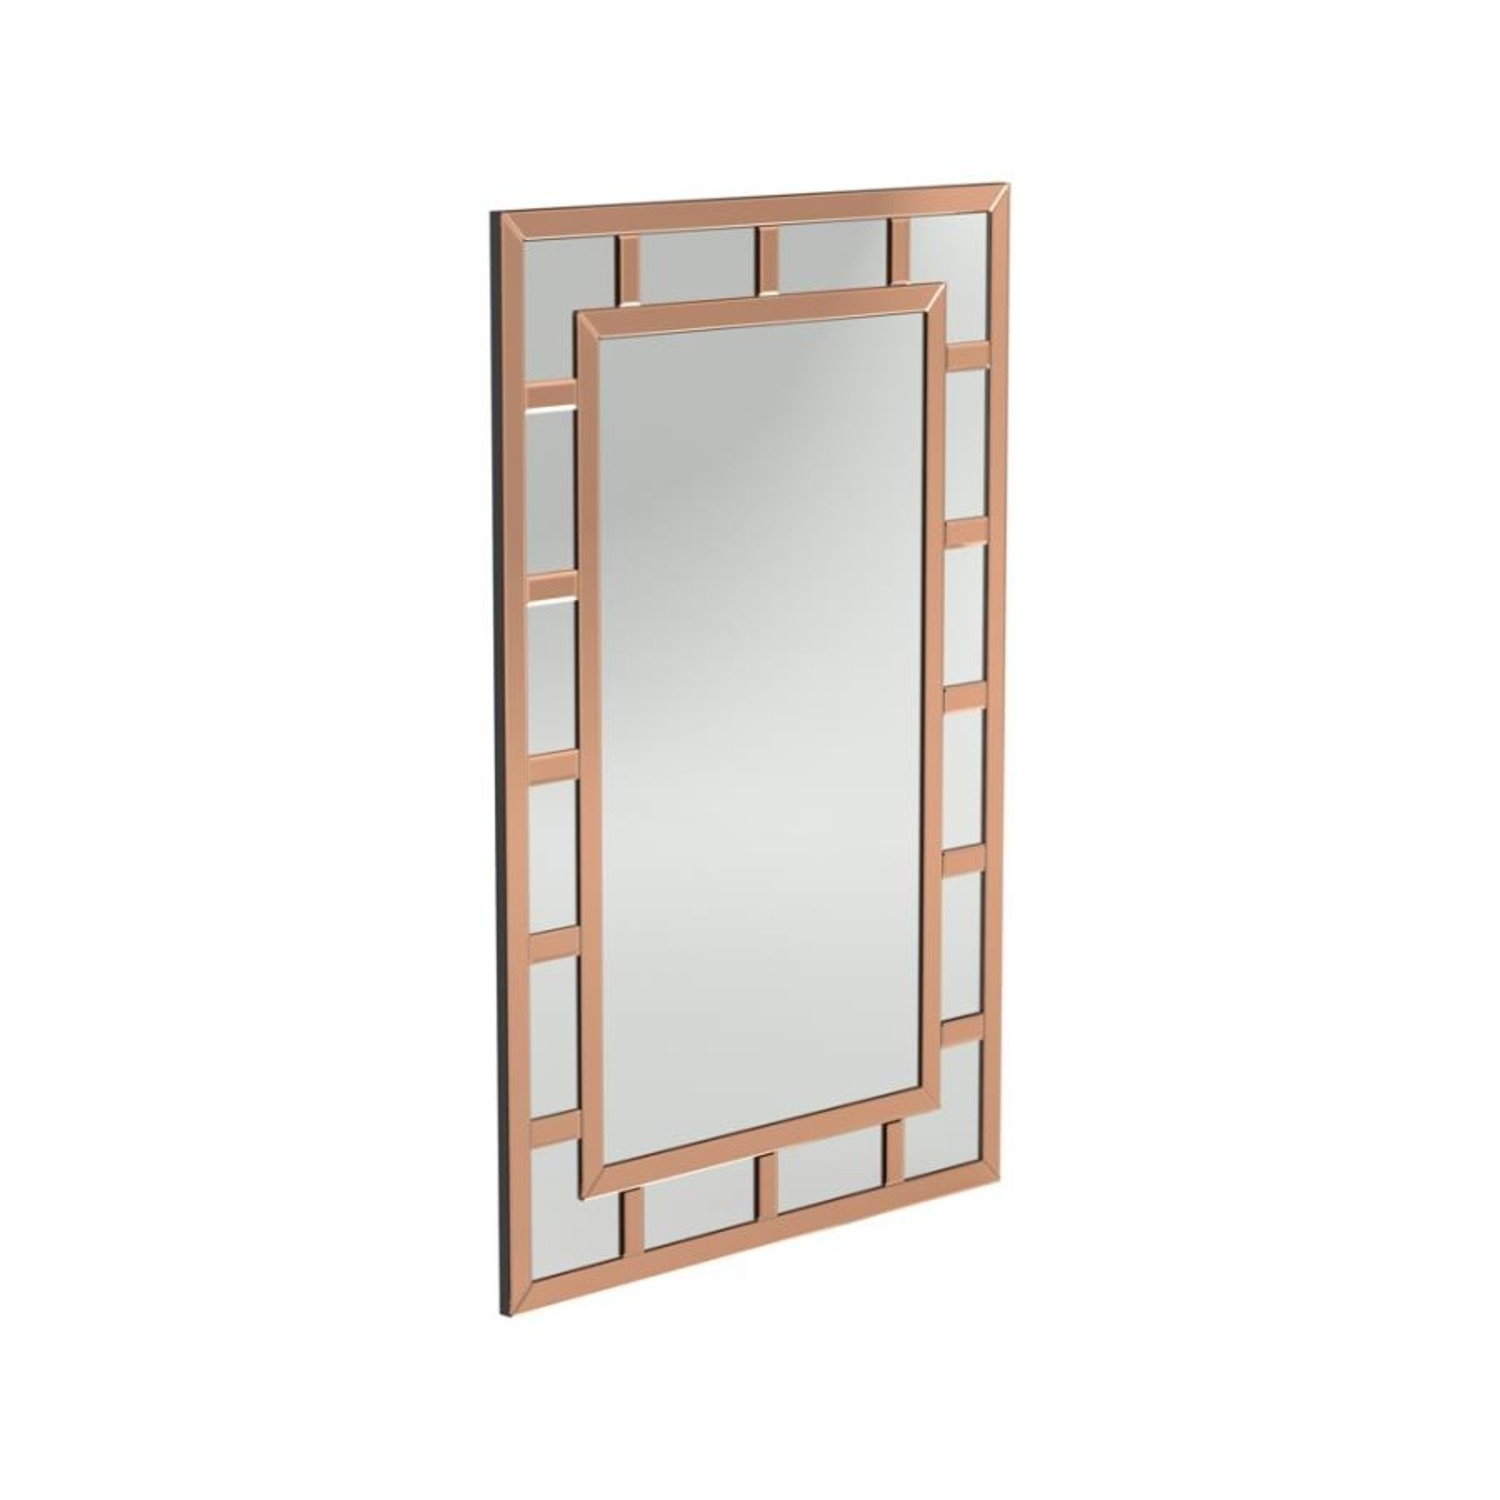 Mirror In Rose Gold Finish W/ Overlaying Design - image-0